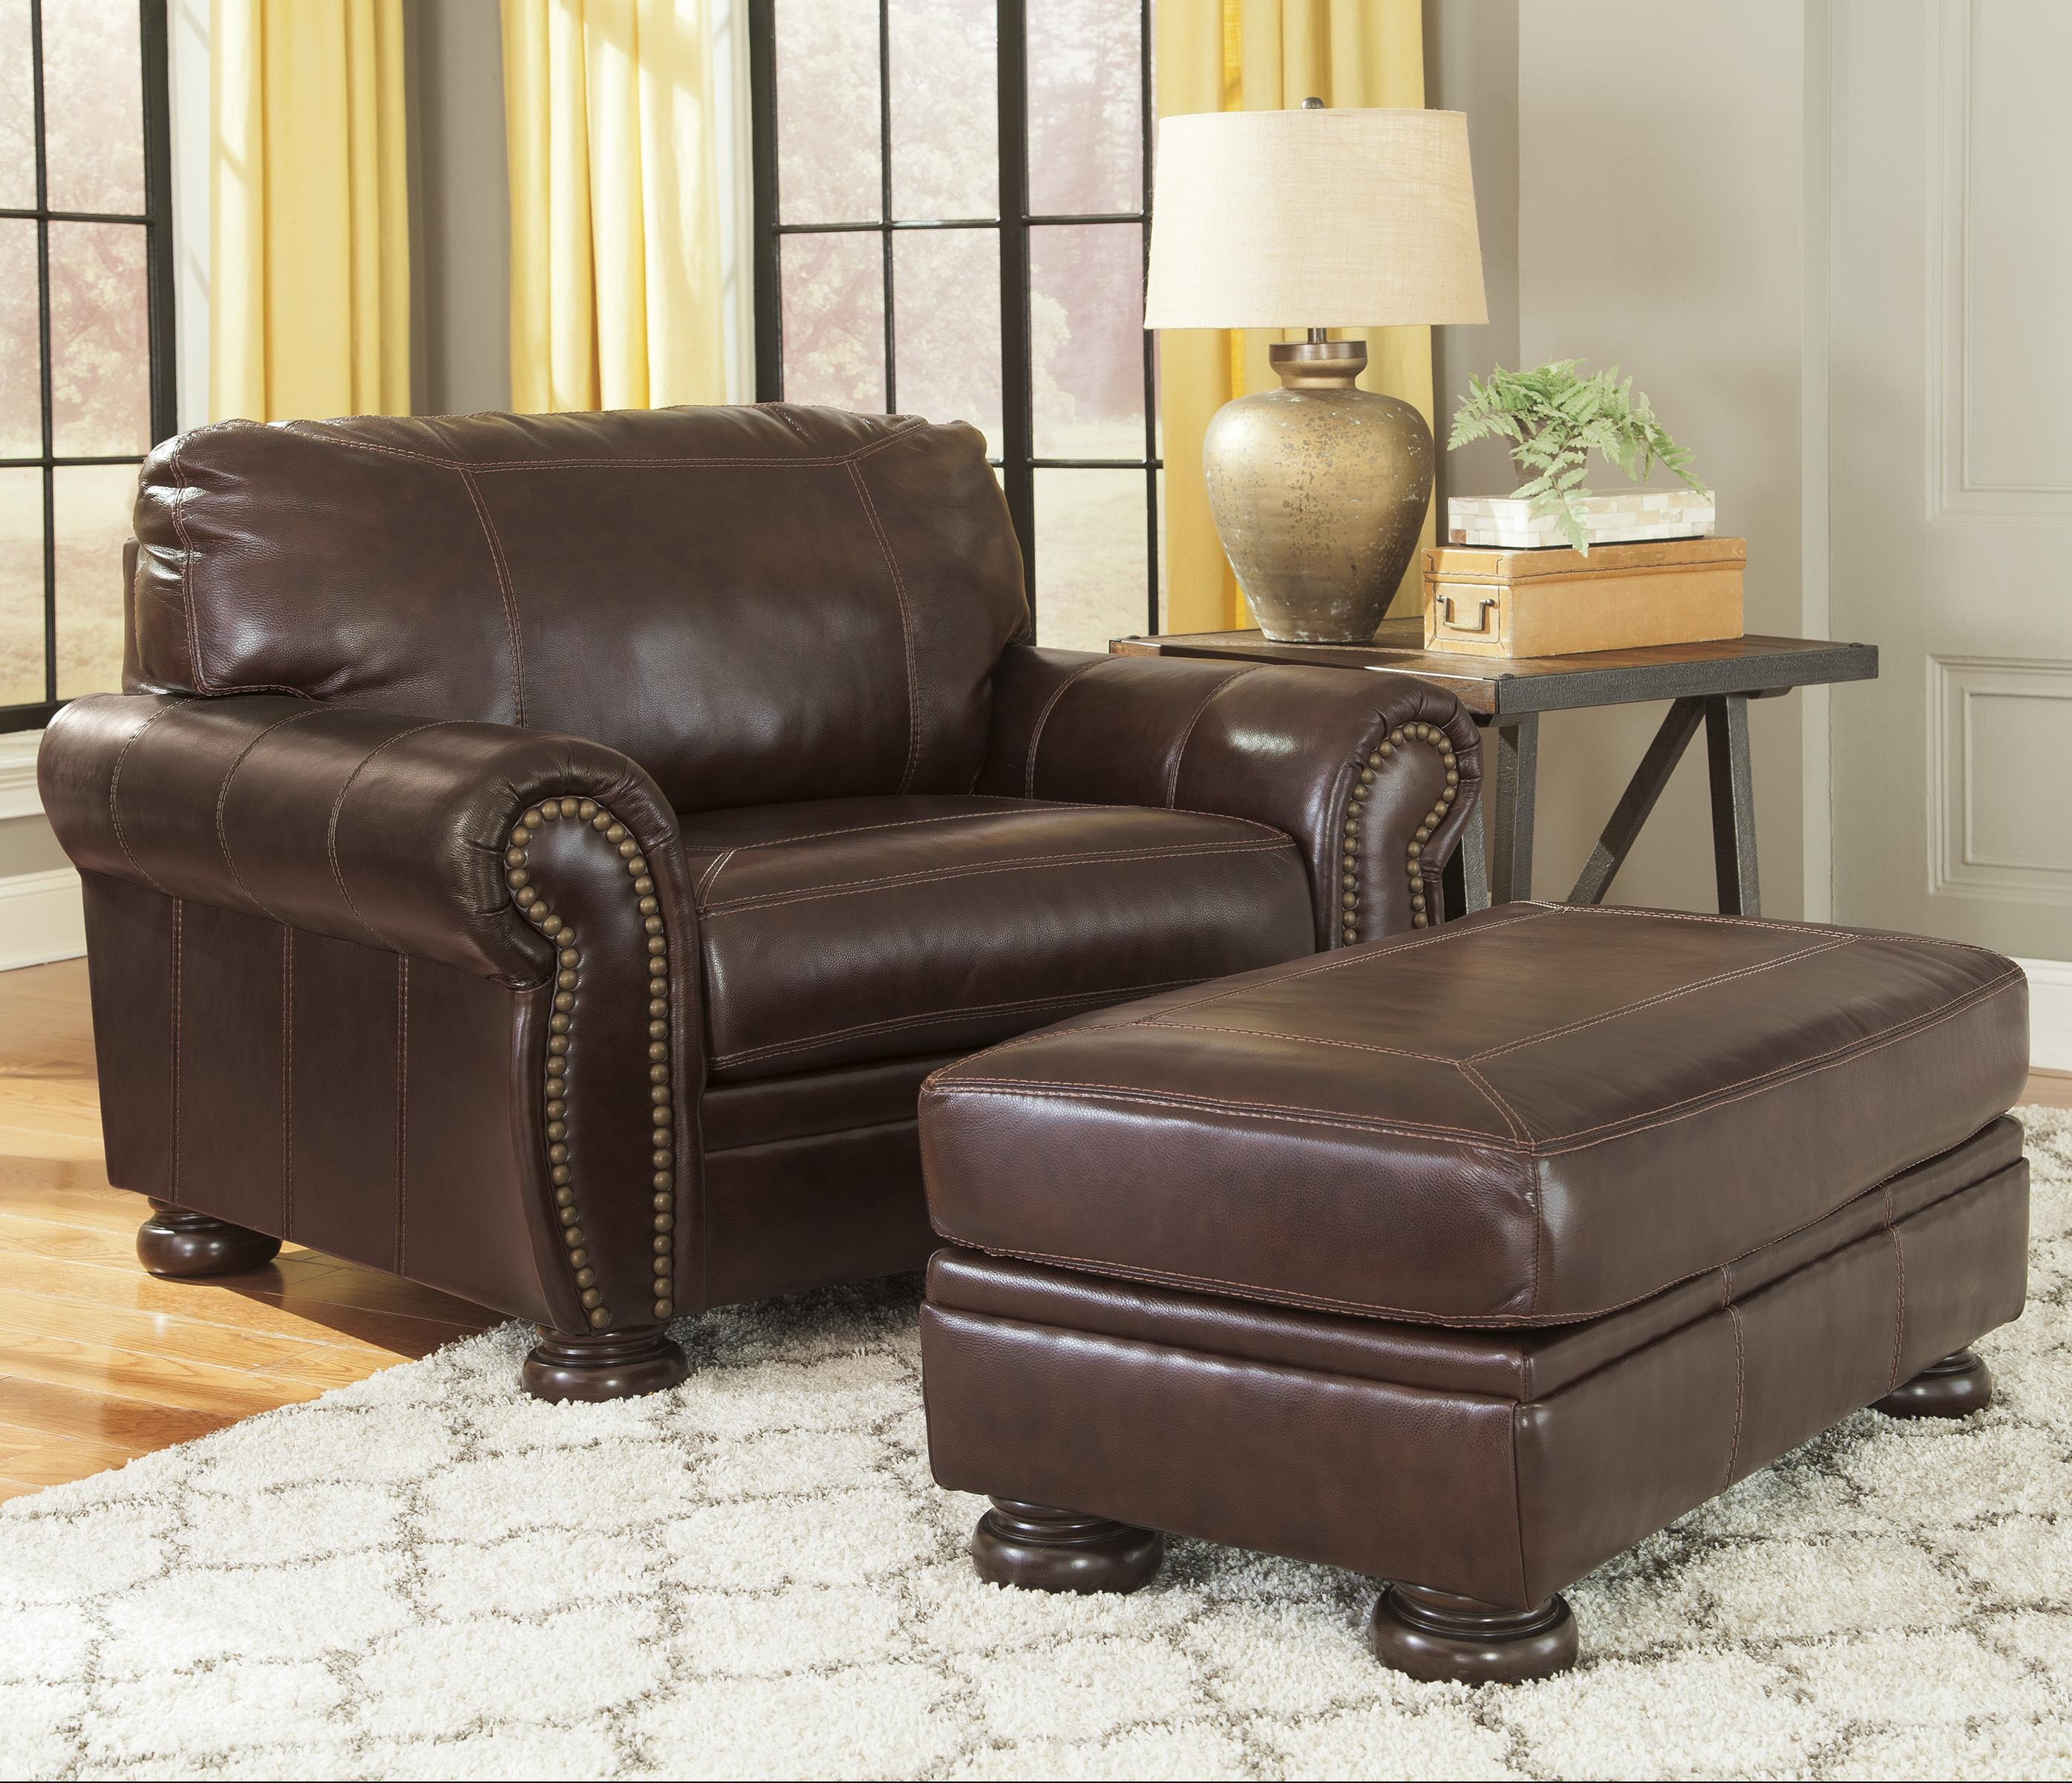 image lisle chair and half at with tawny ottoman available nuvella the a